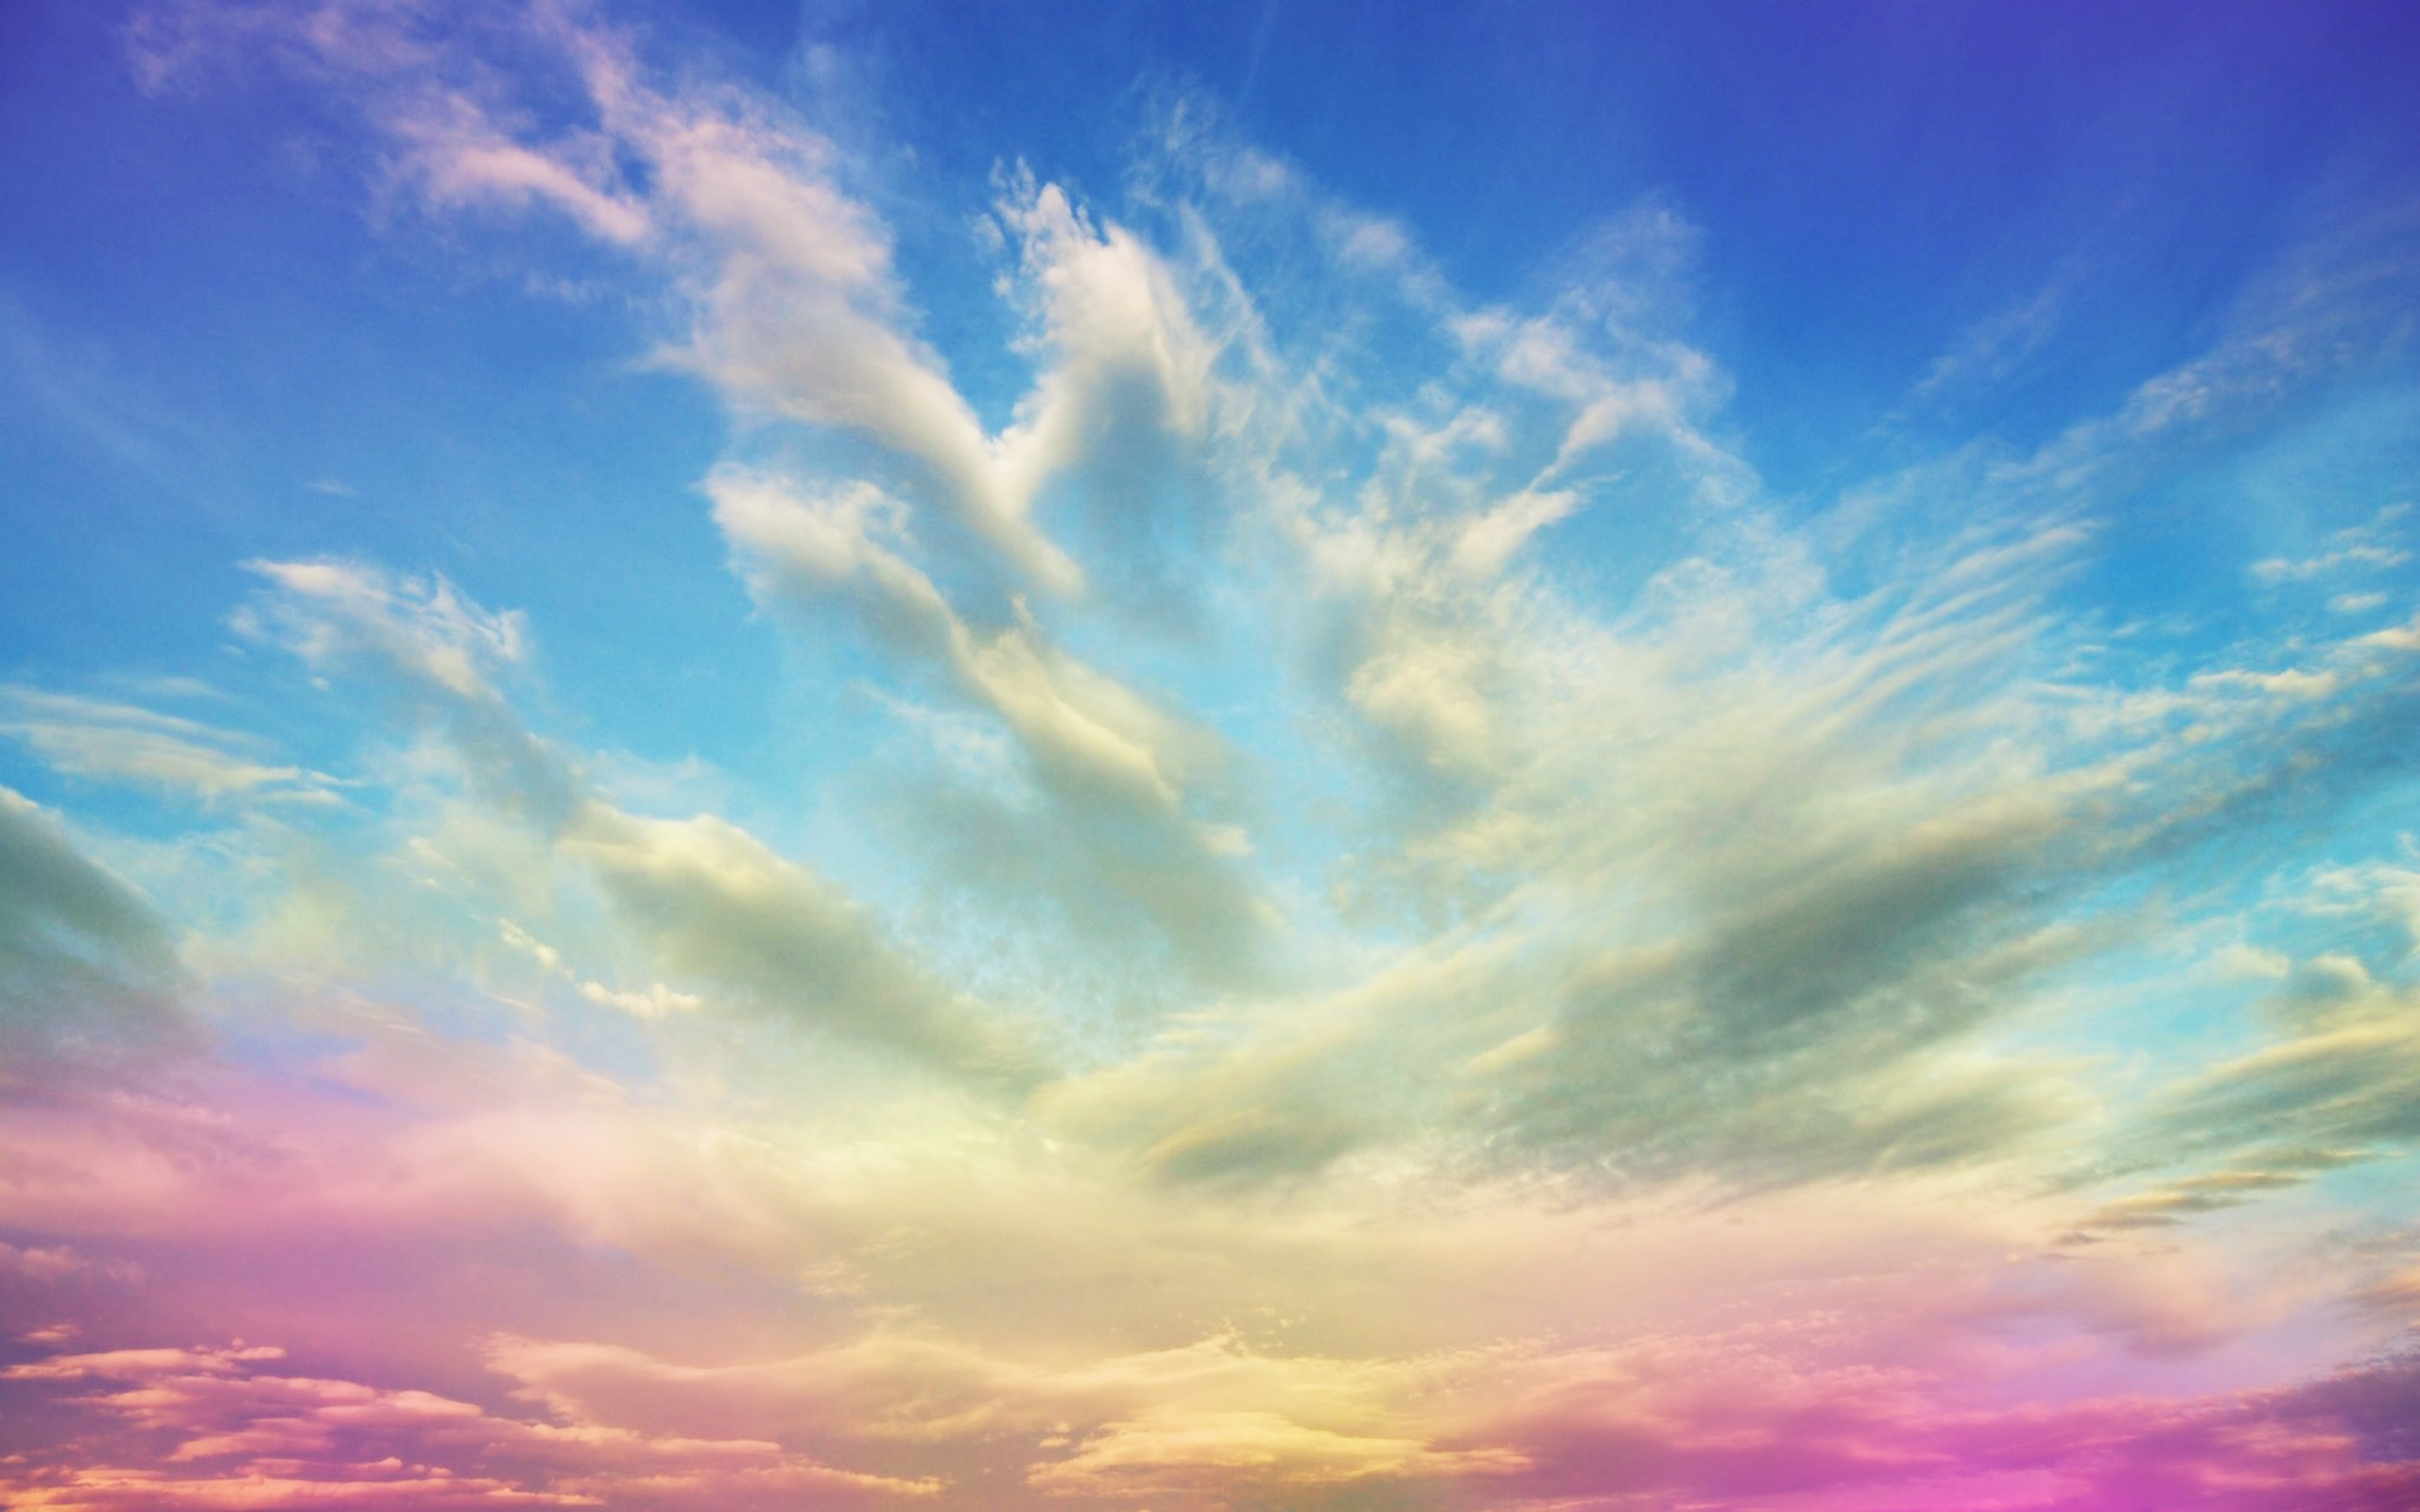 sky colors wallpapers in jpg format for free download